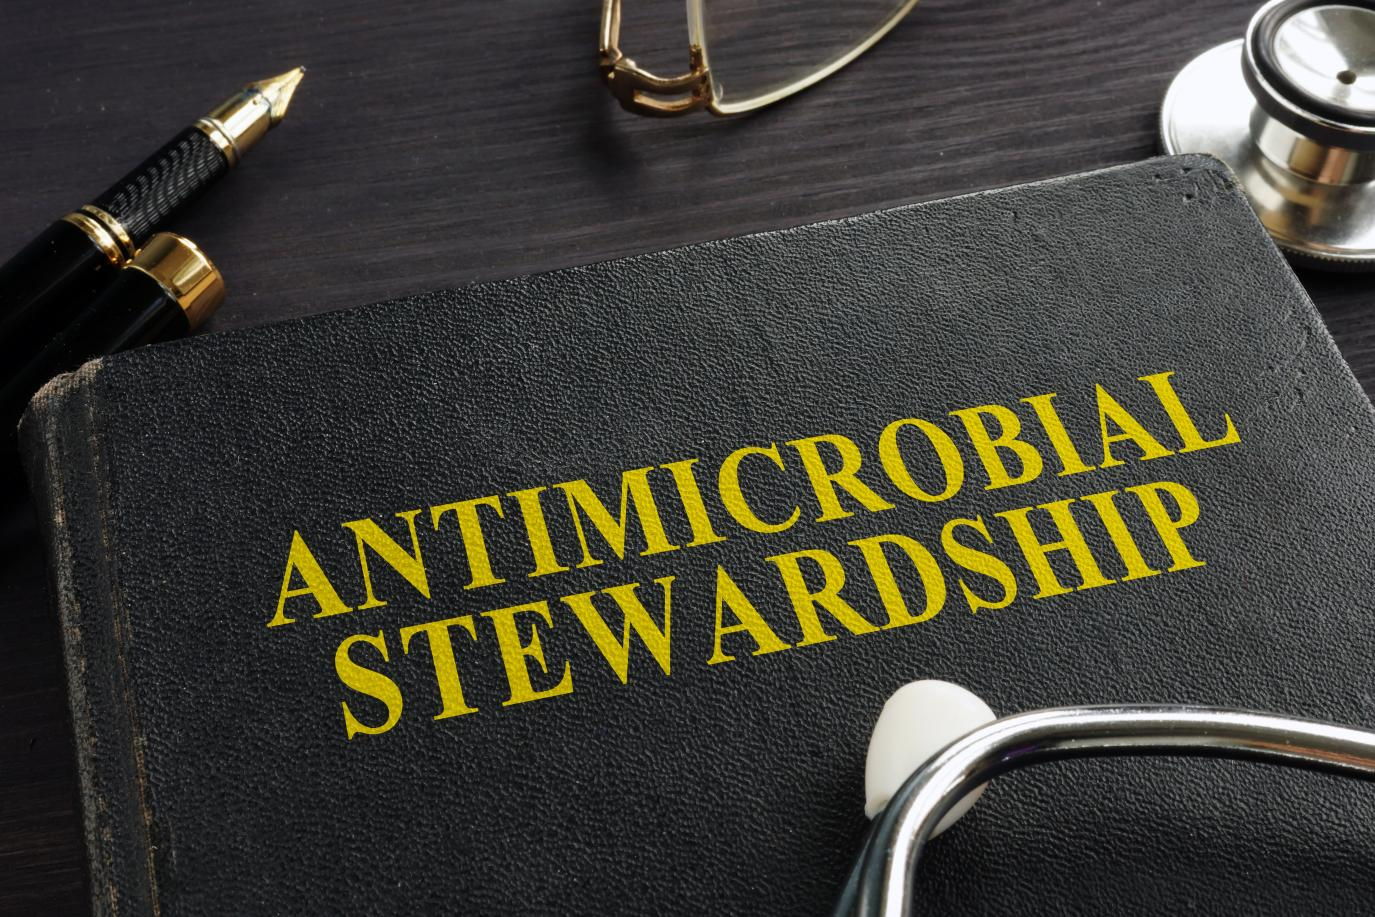 Folder labelled 'Antimicrobial Stewardship'